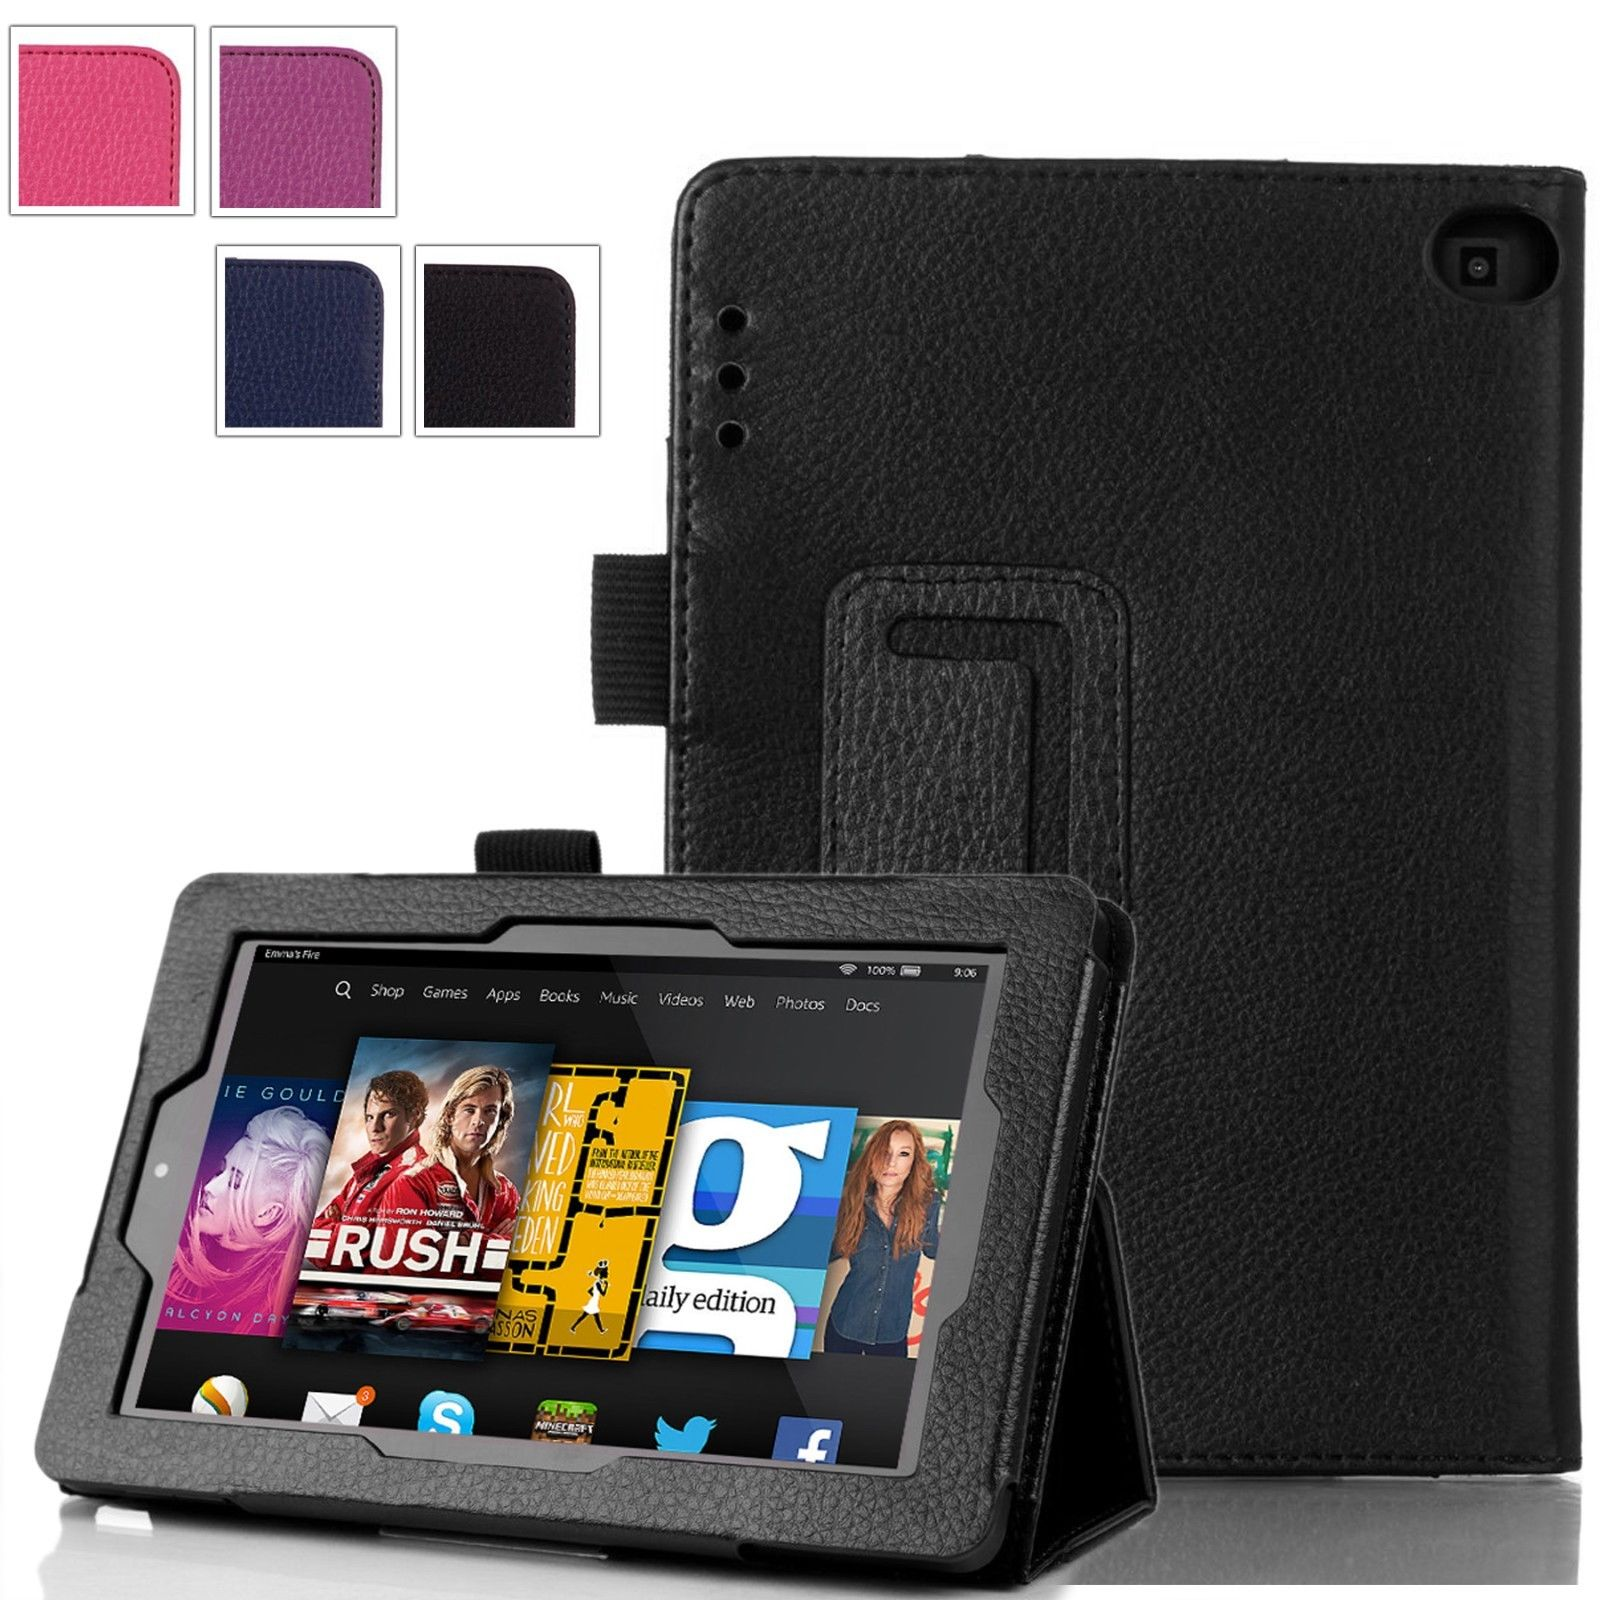 product amazon kindle fire essay Products from the amazon fire tablet family fire 7 tablet with alexa, 7 display  protect and secure your amazon kindle fire hd 8 tablet 2017 released.